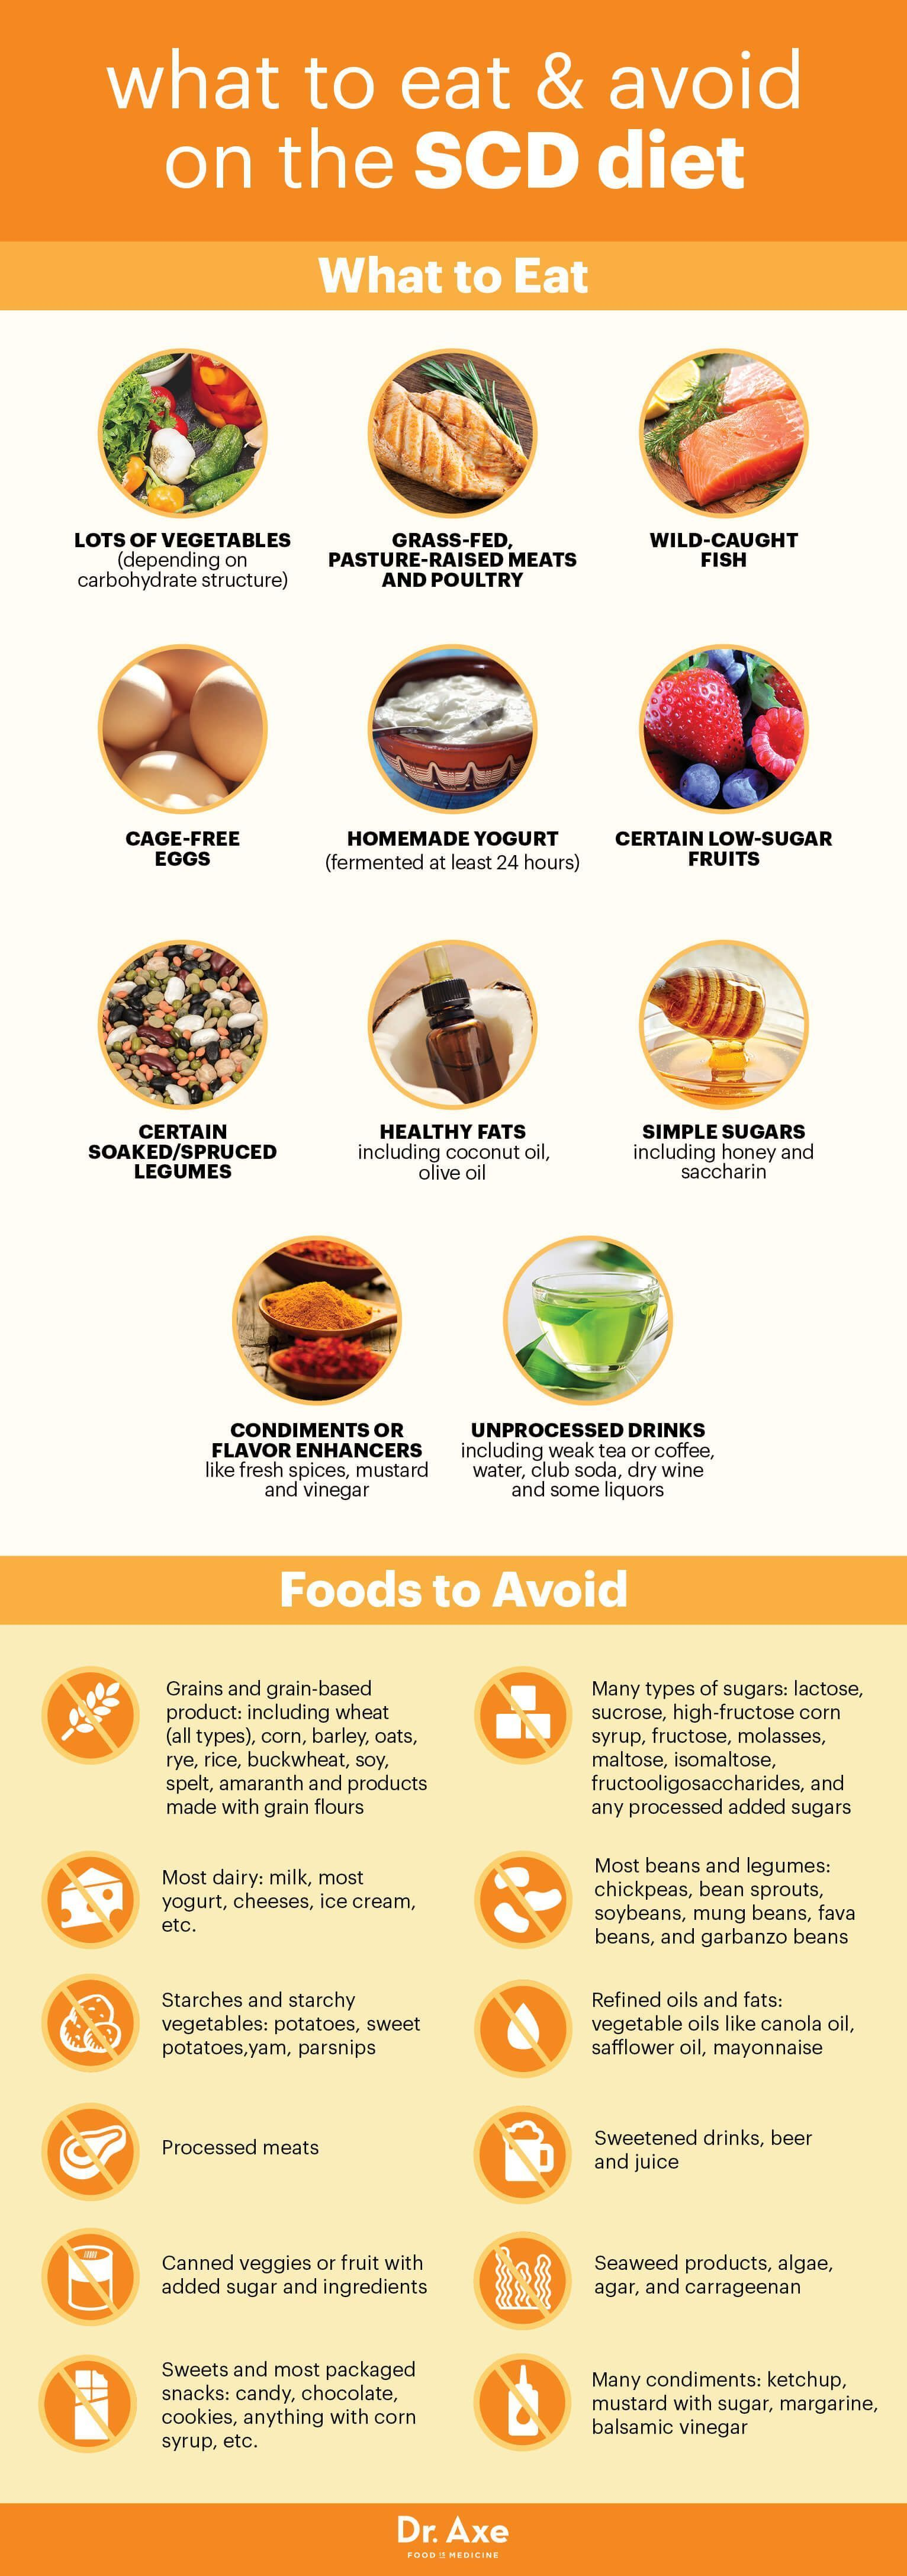 how to lose weight on the scd diet